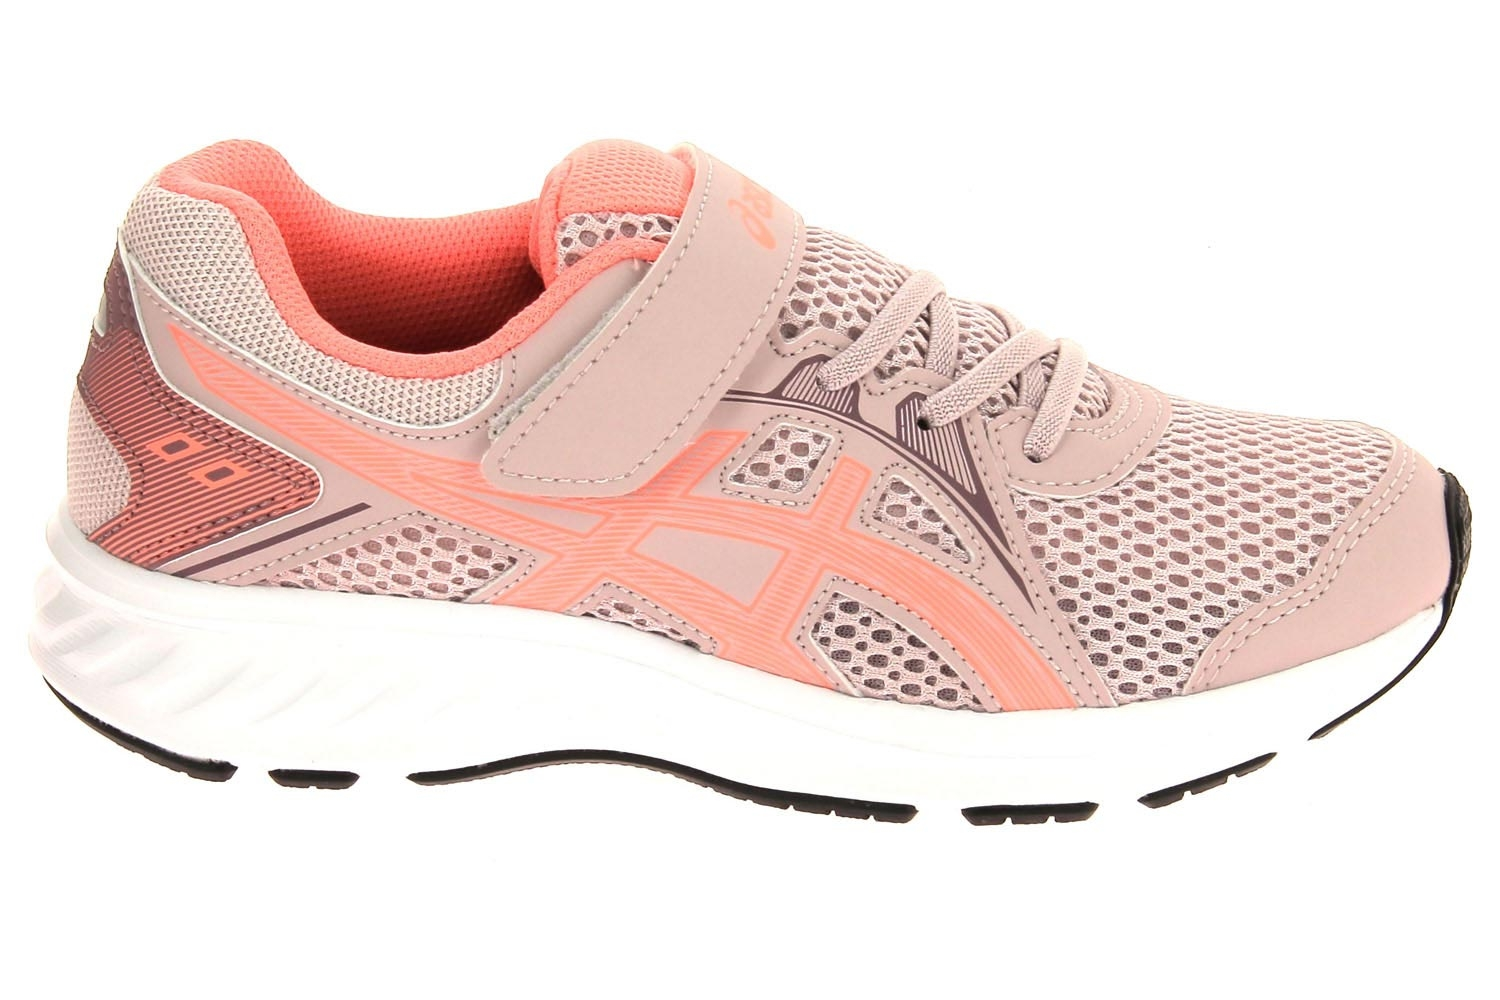 Chaussures fille asics rose